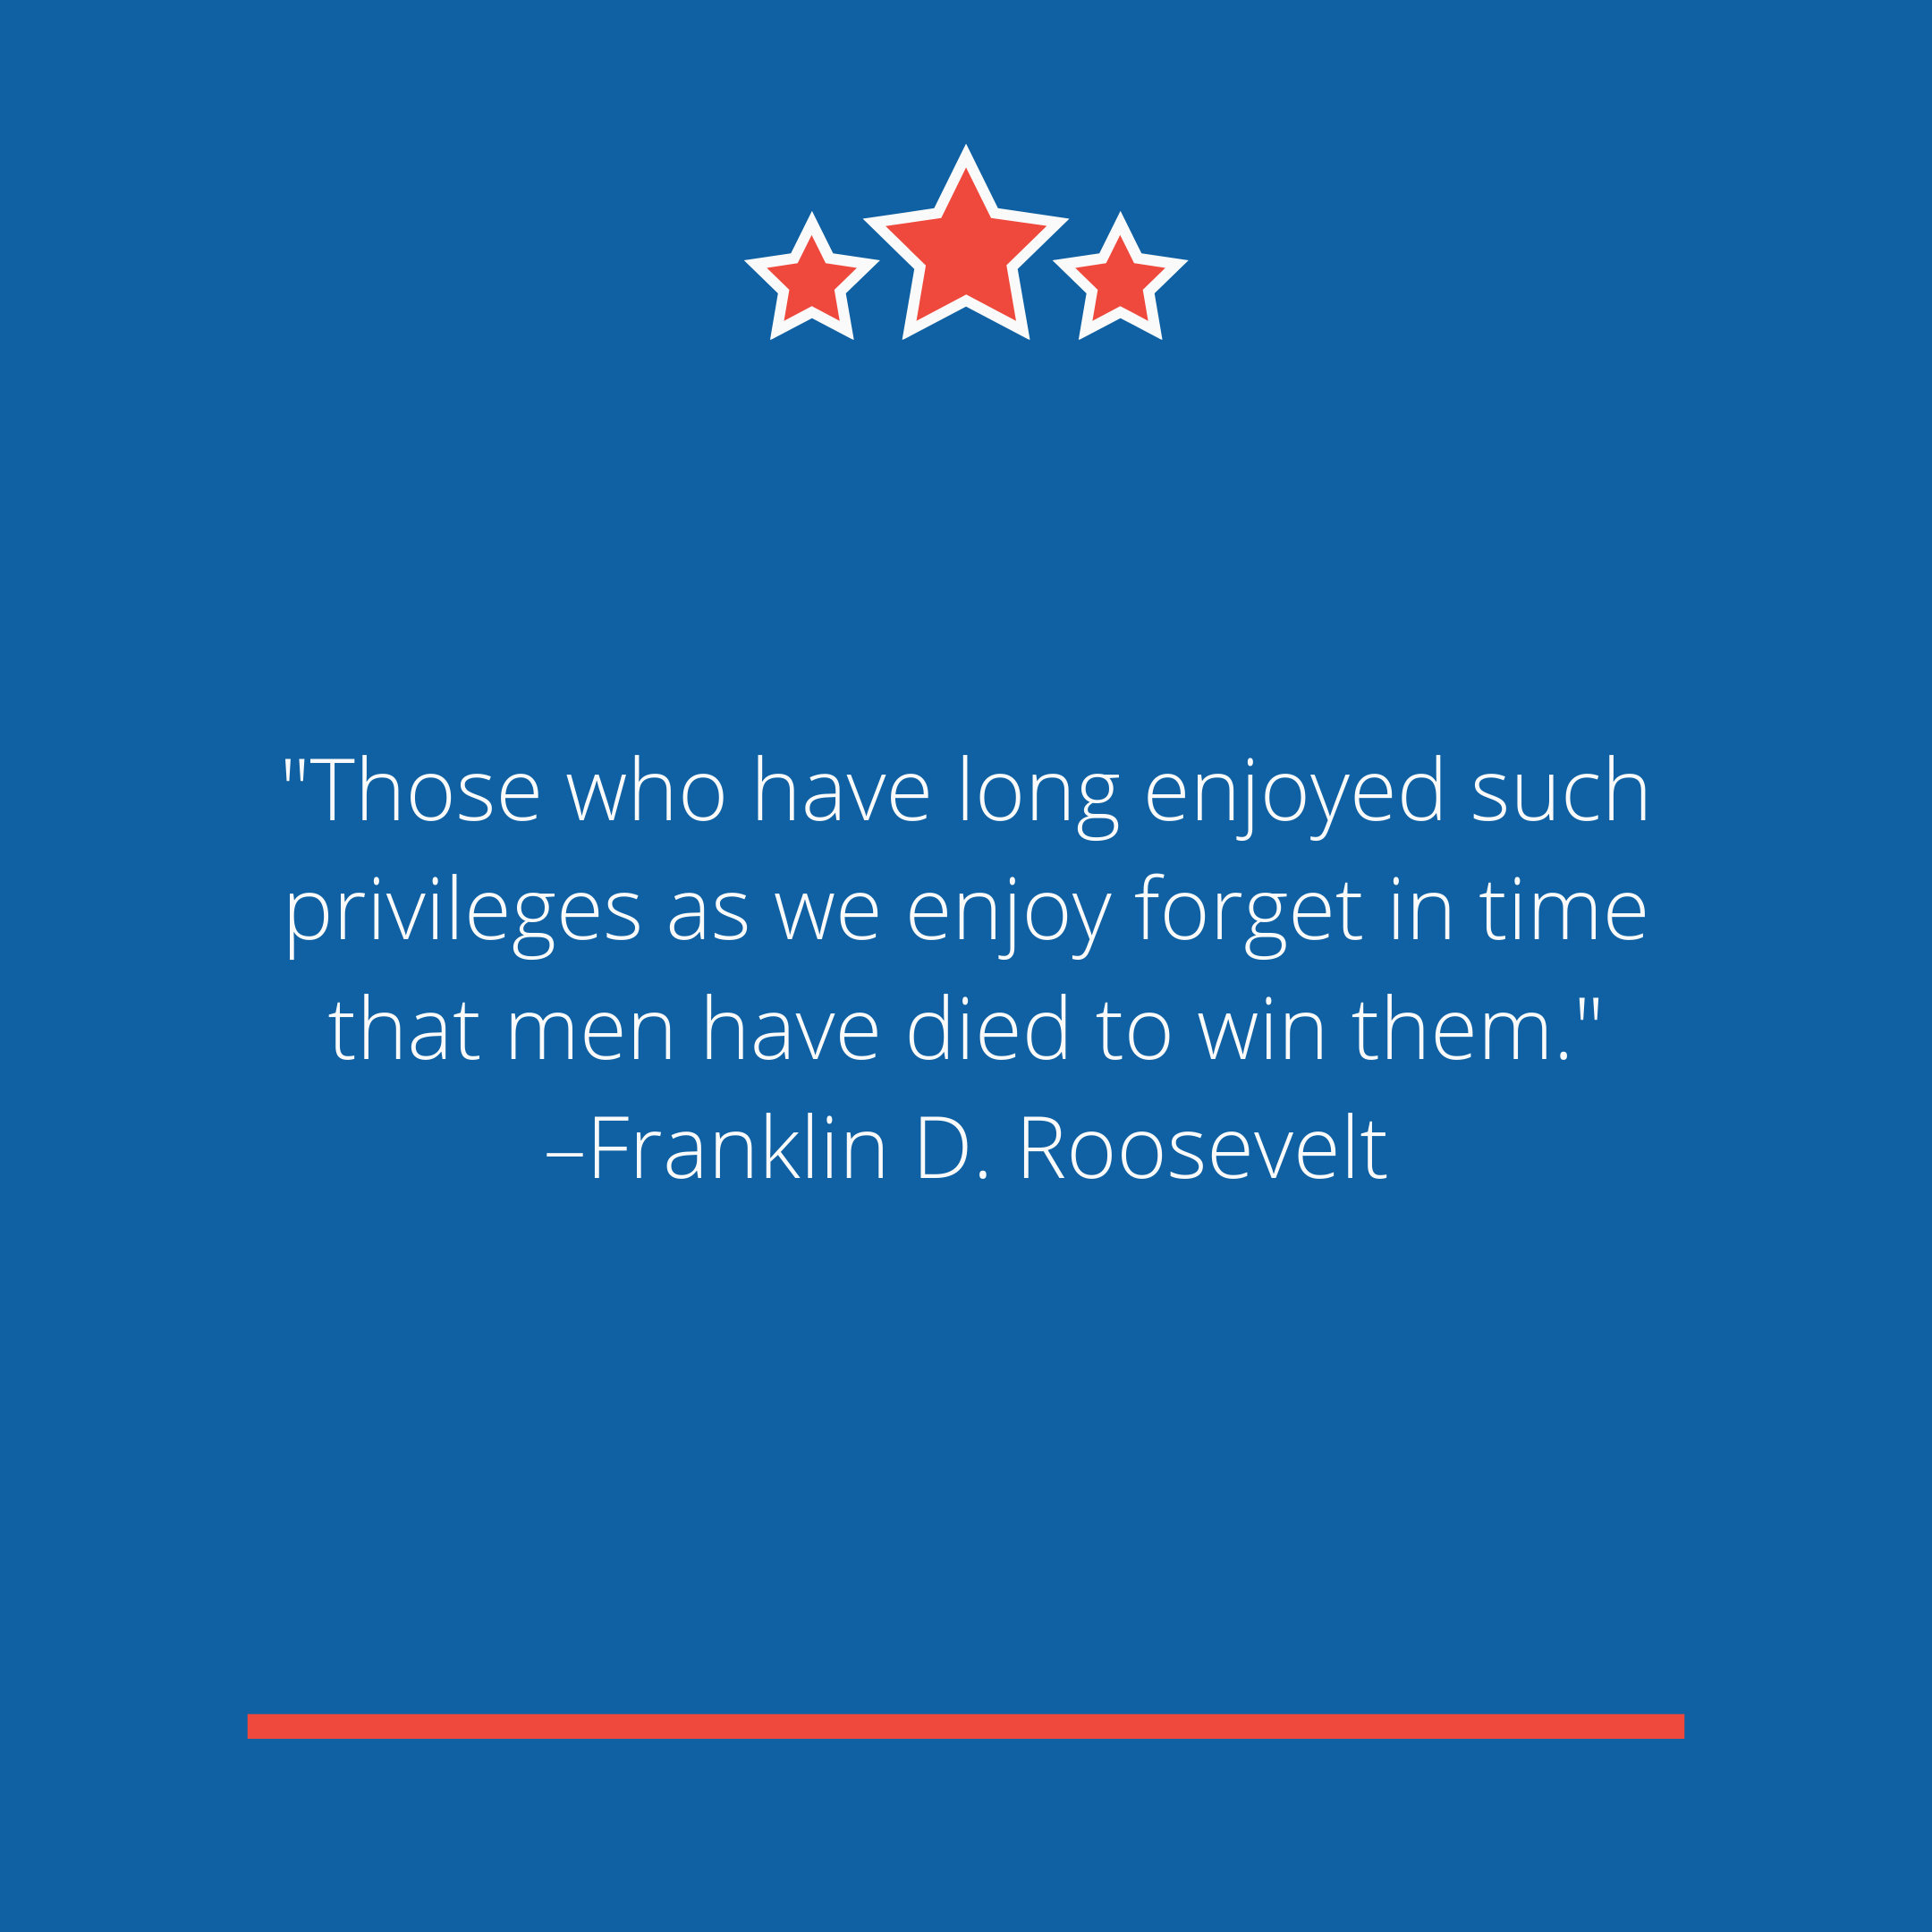 """Those who have long enjoyed such privileges as we enjoy forget in time that men have died to win them."" –Franklin D. Roosevelt"